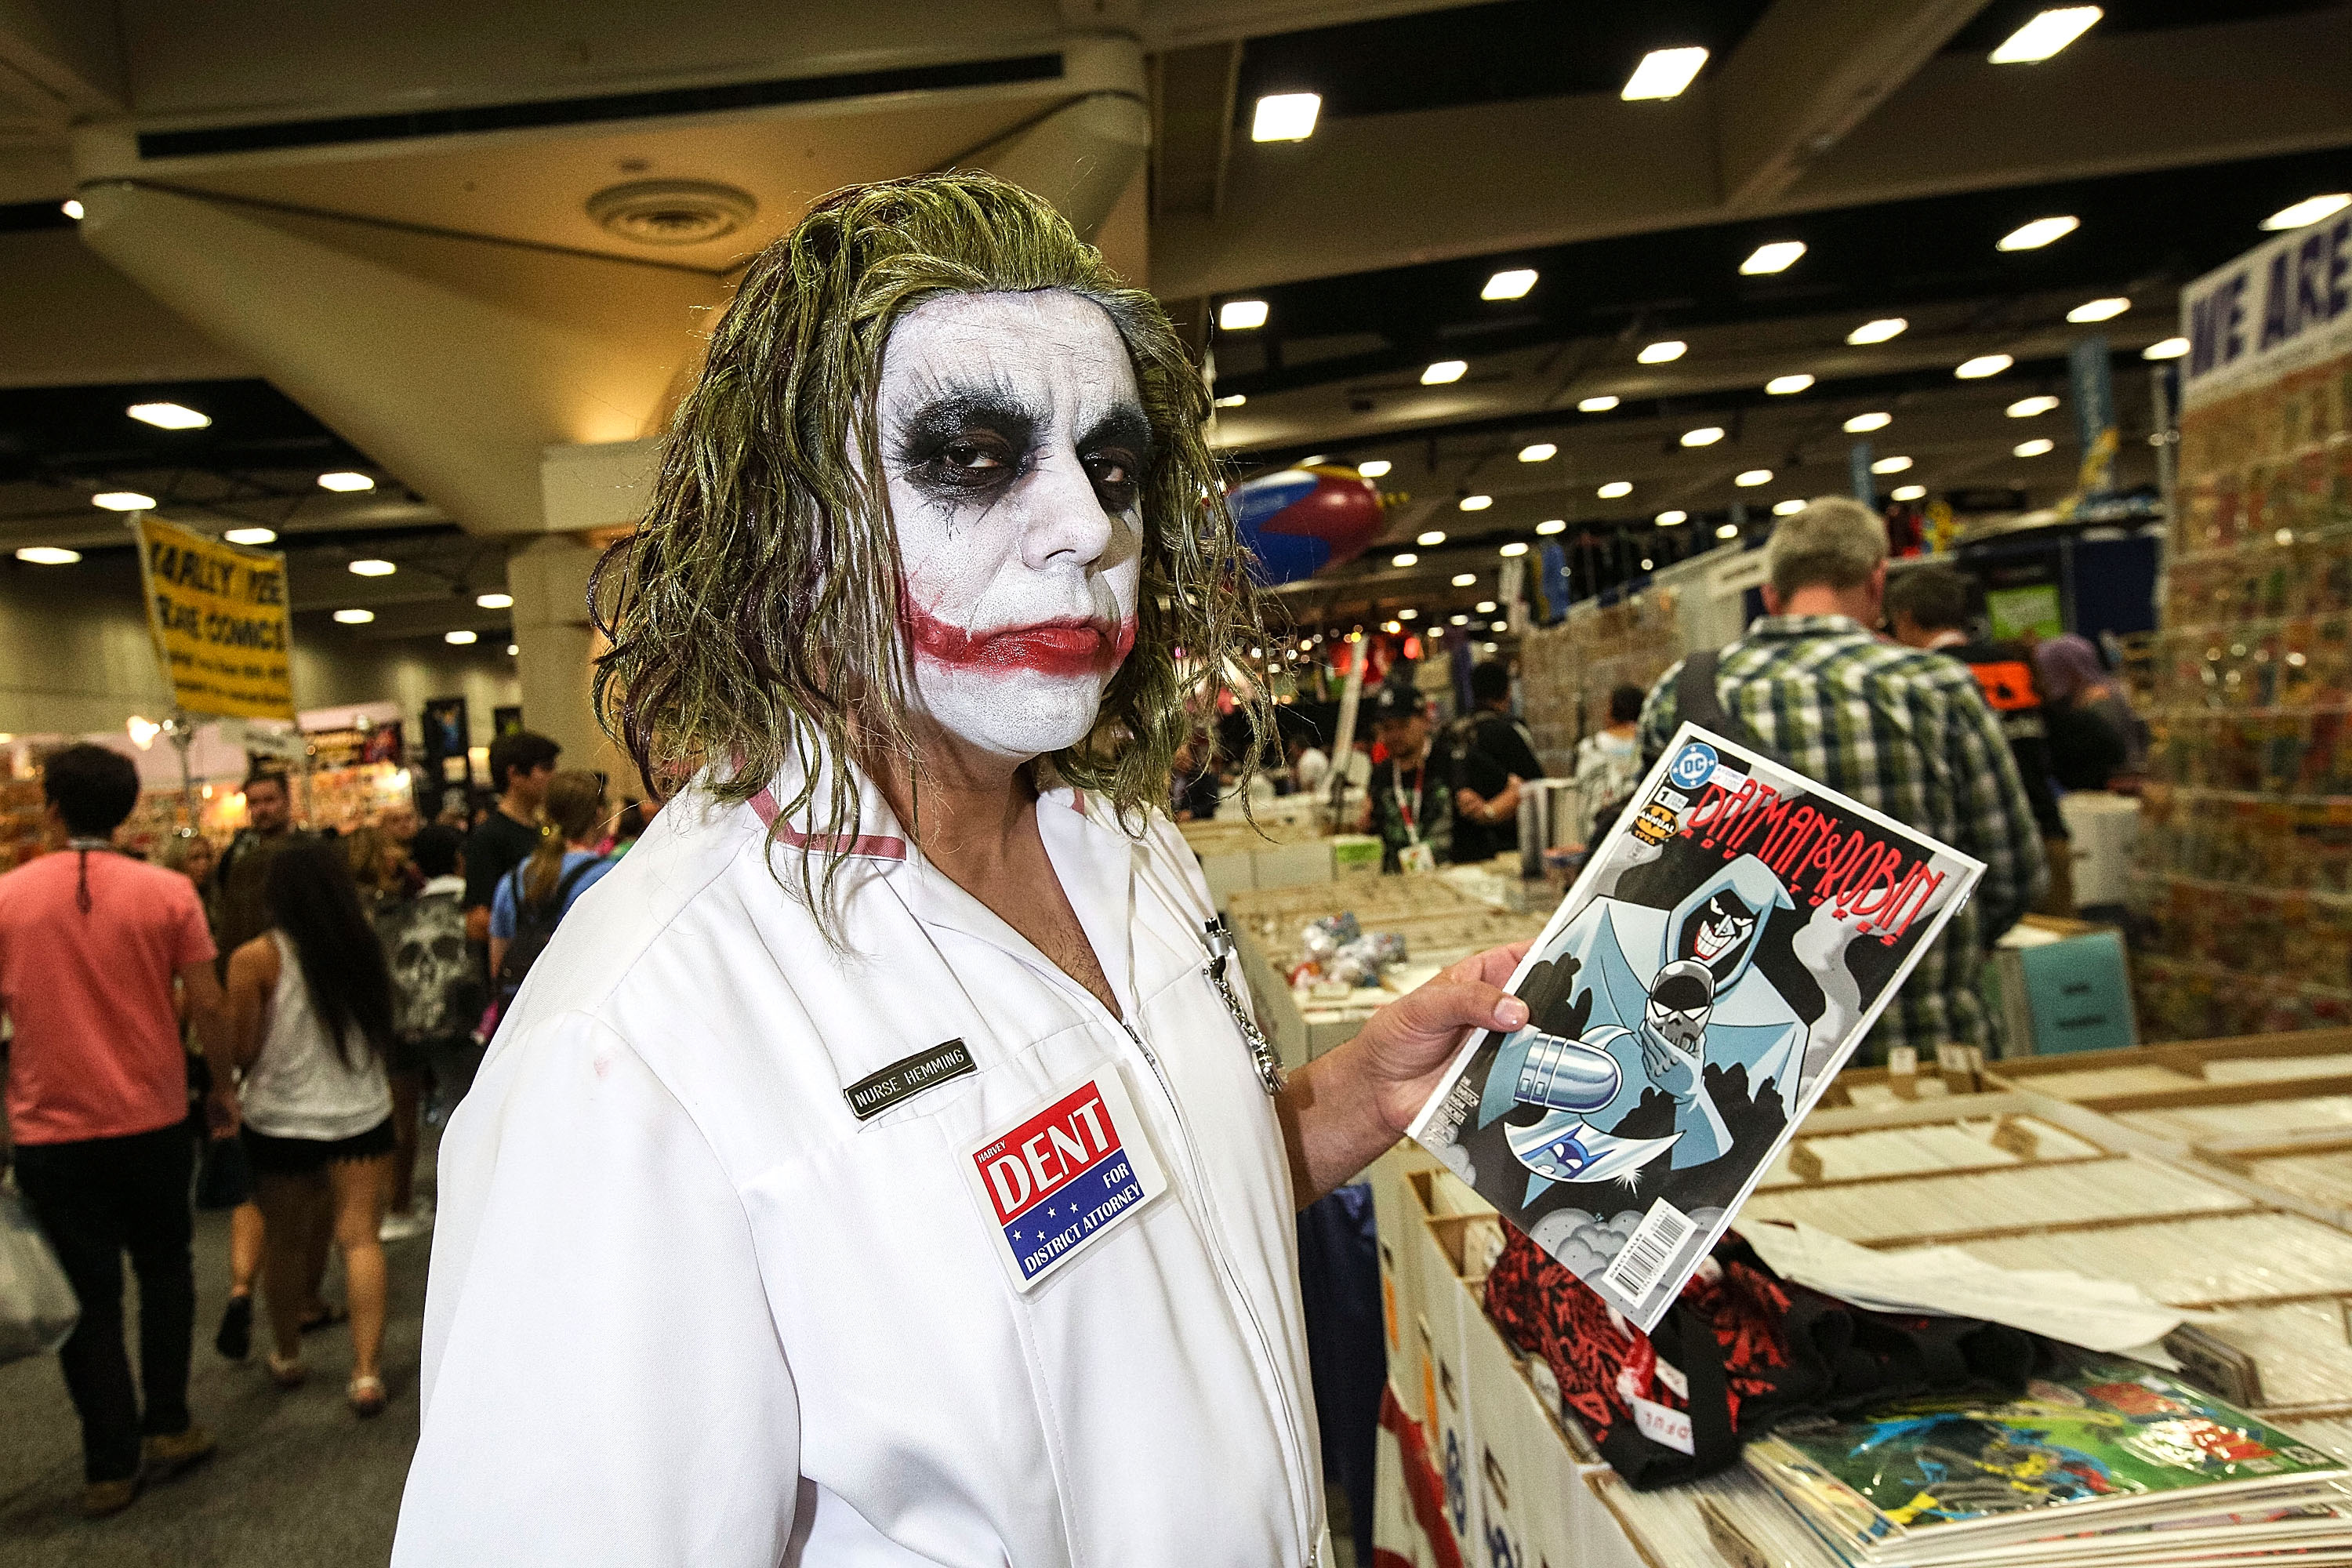 SAN DIEGO, CA - JULY 11:  A costumed fan attends Comic-Con International at San Diego Convention Center on July 11, 2015 in S